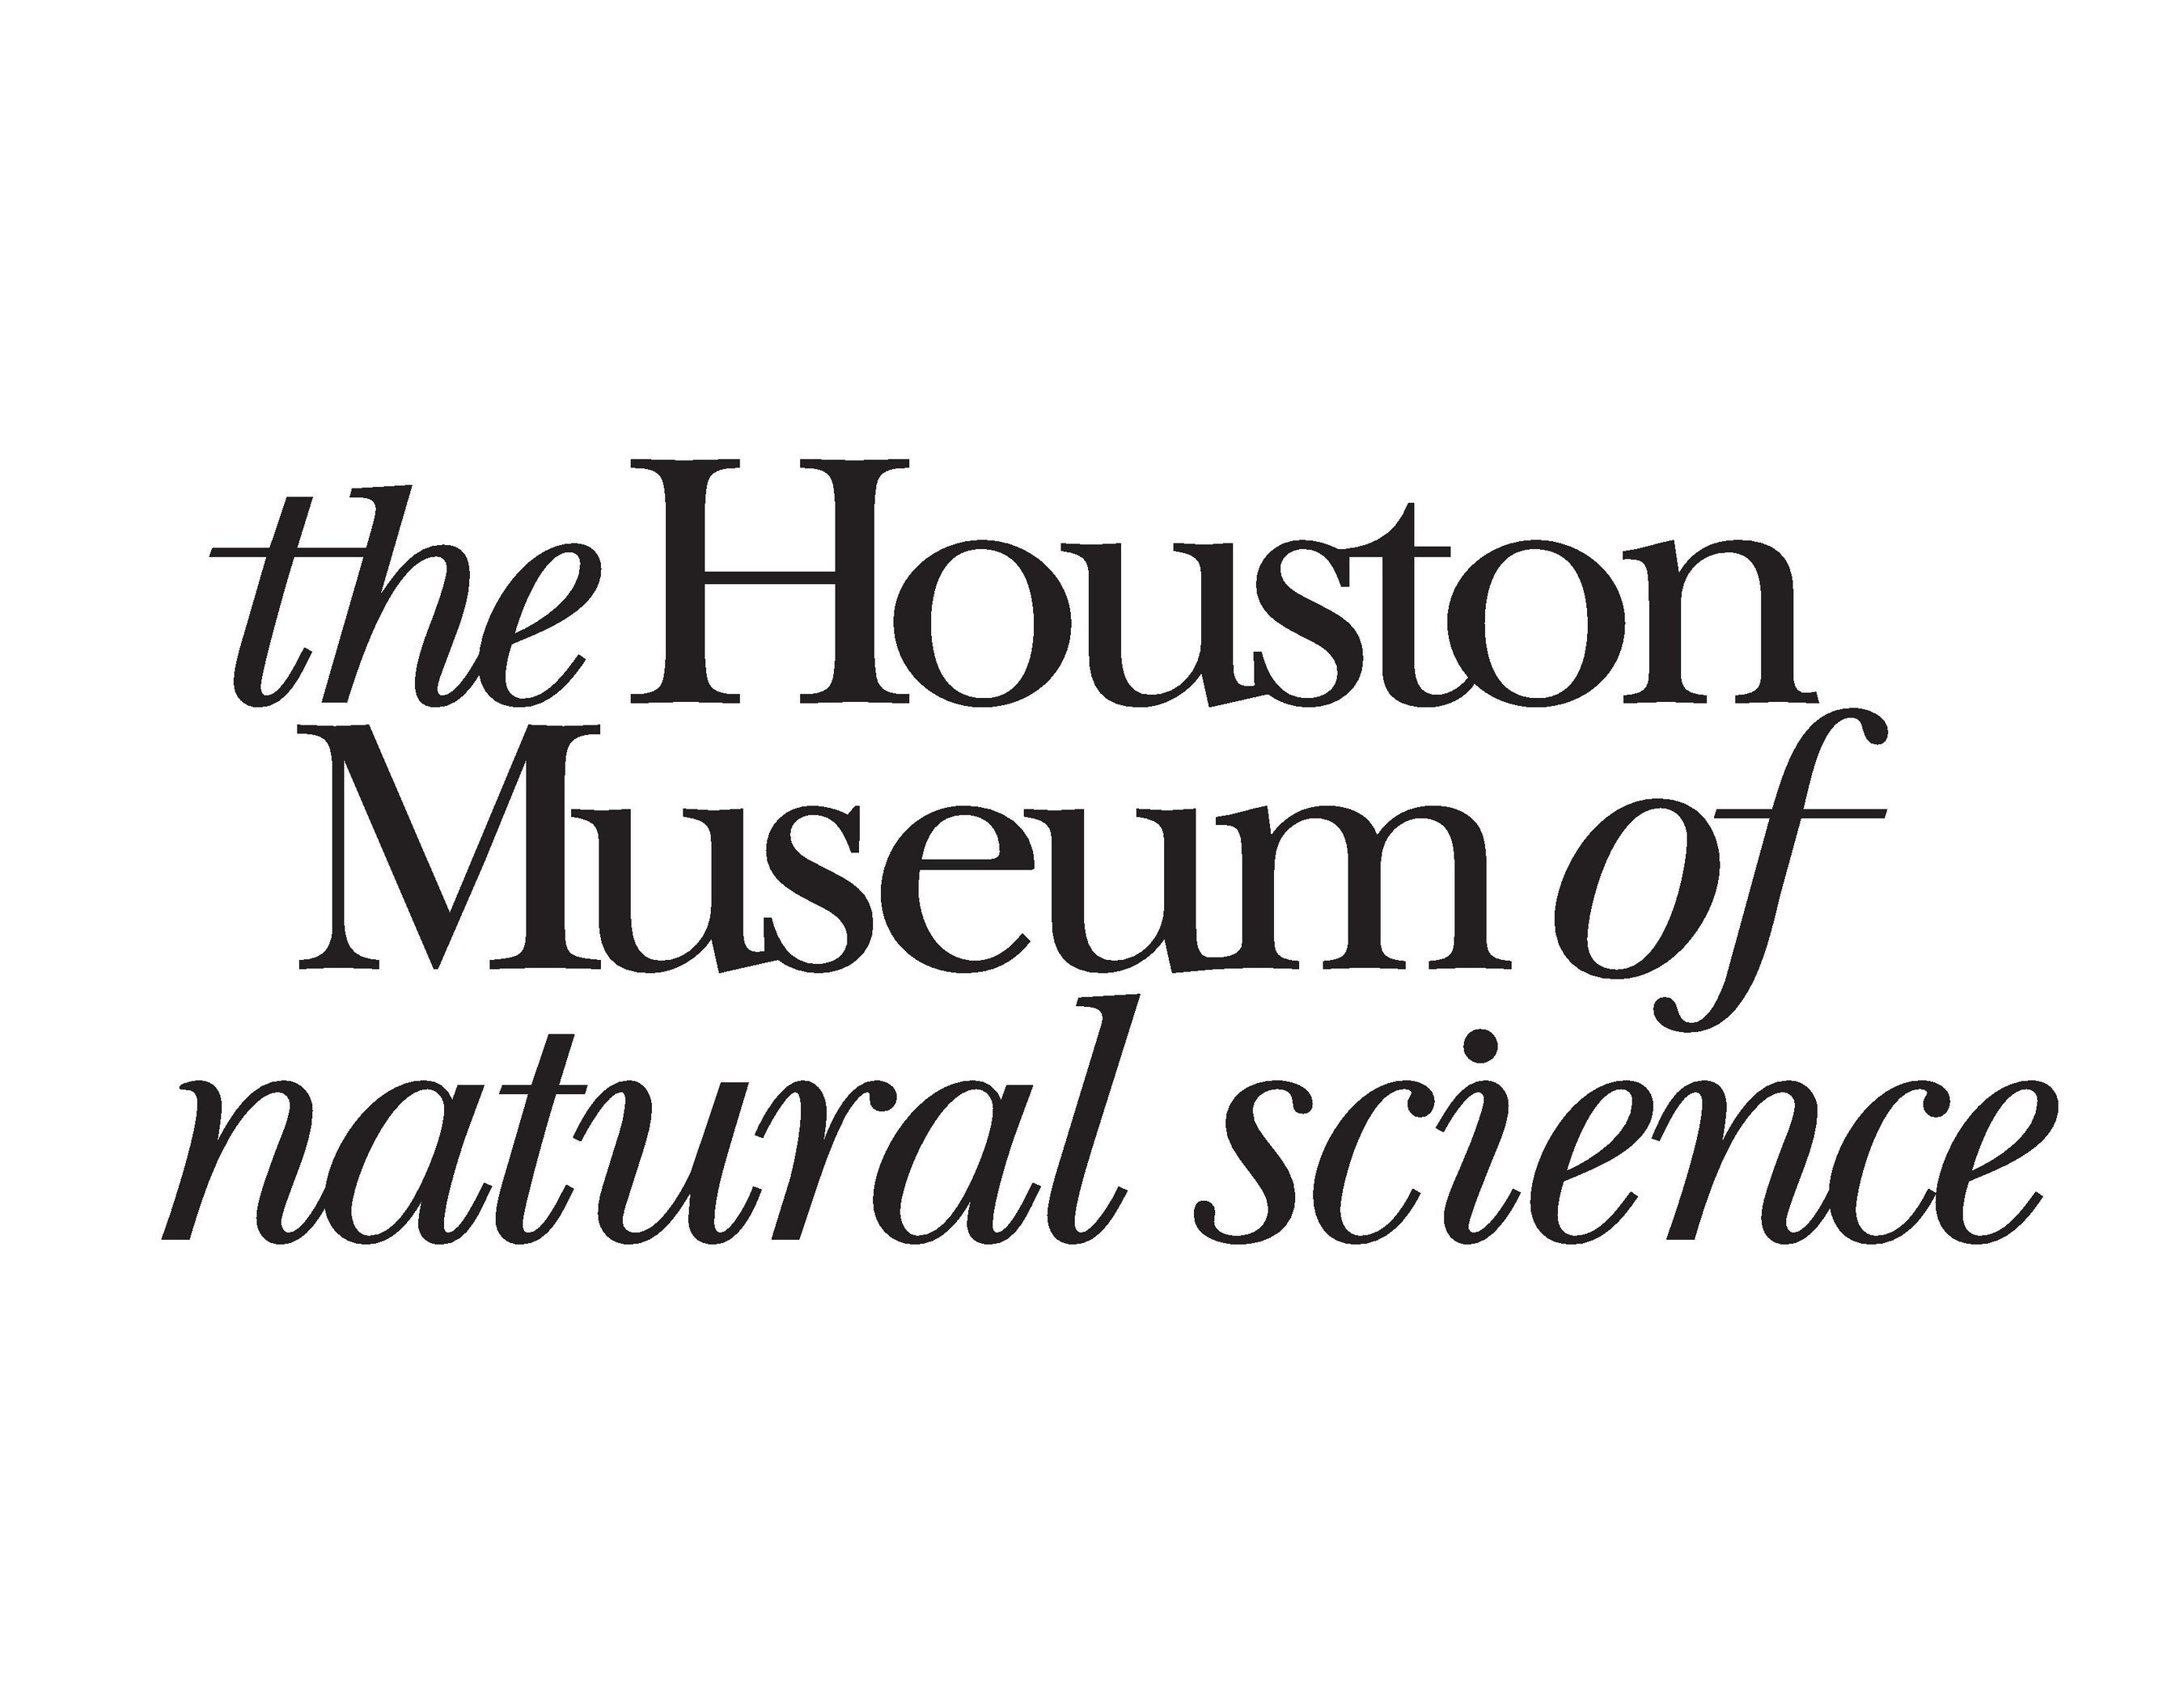 GDF SUEZ Energy Resources and the Houston Museum of Natural Science Reaffirm Their Commitment to Sustainable Energy Use